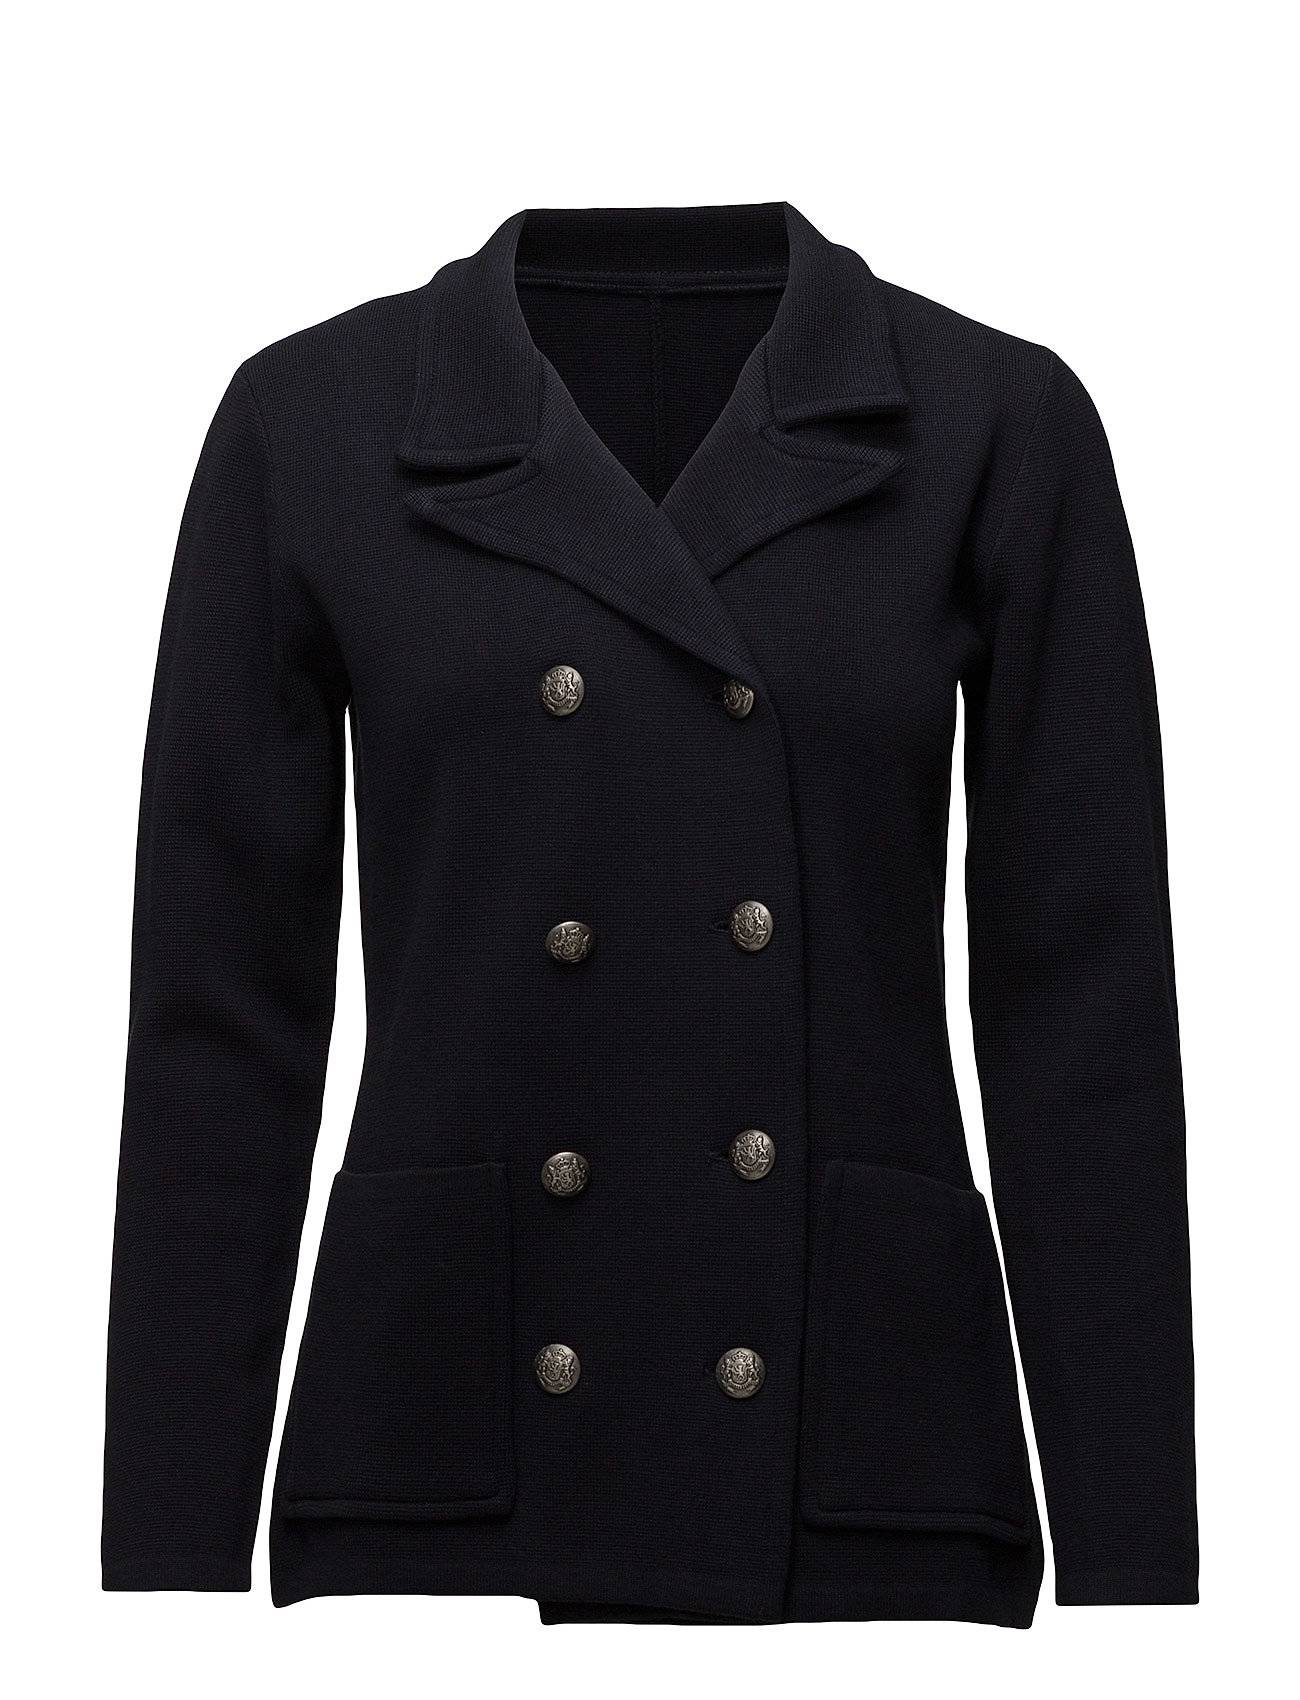 Park Lane Blazer Knitted Jacket